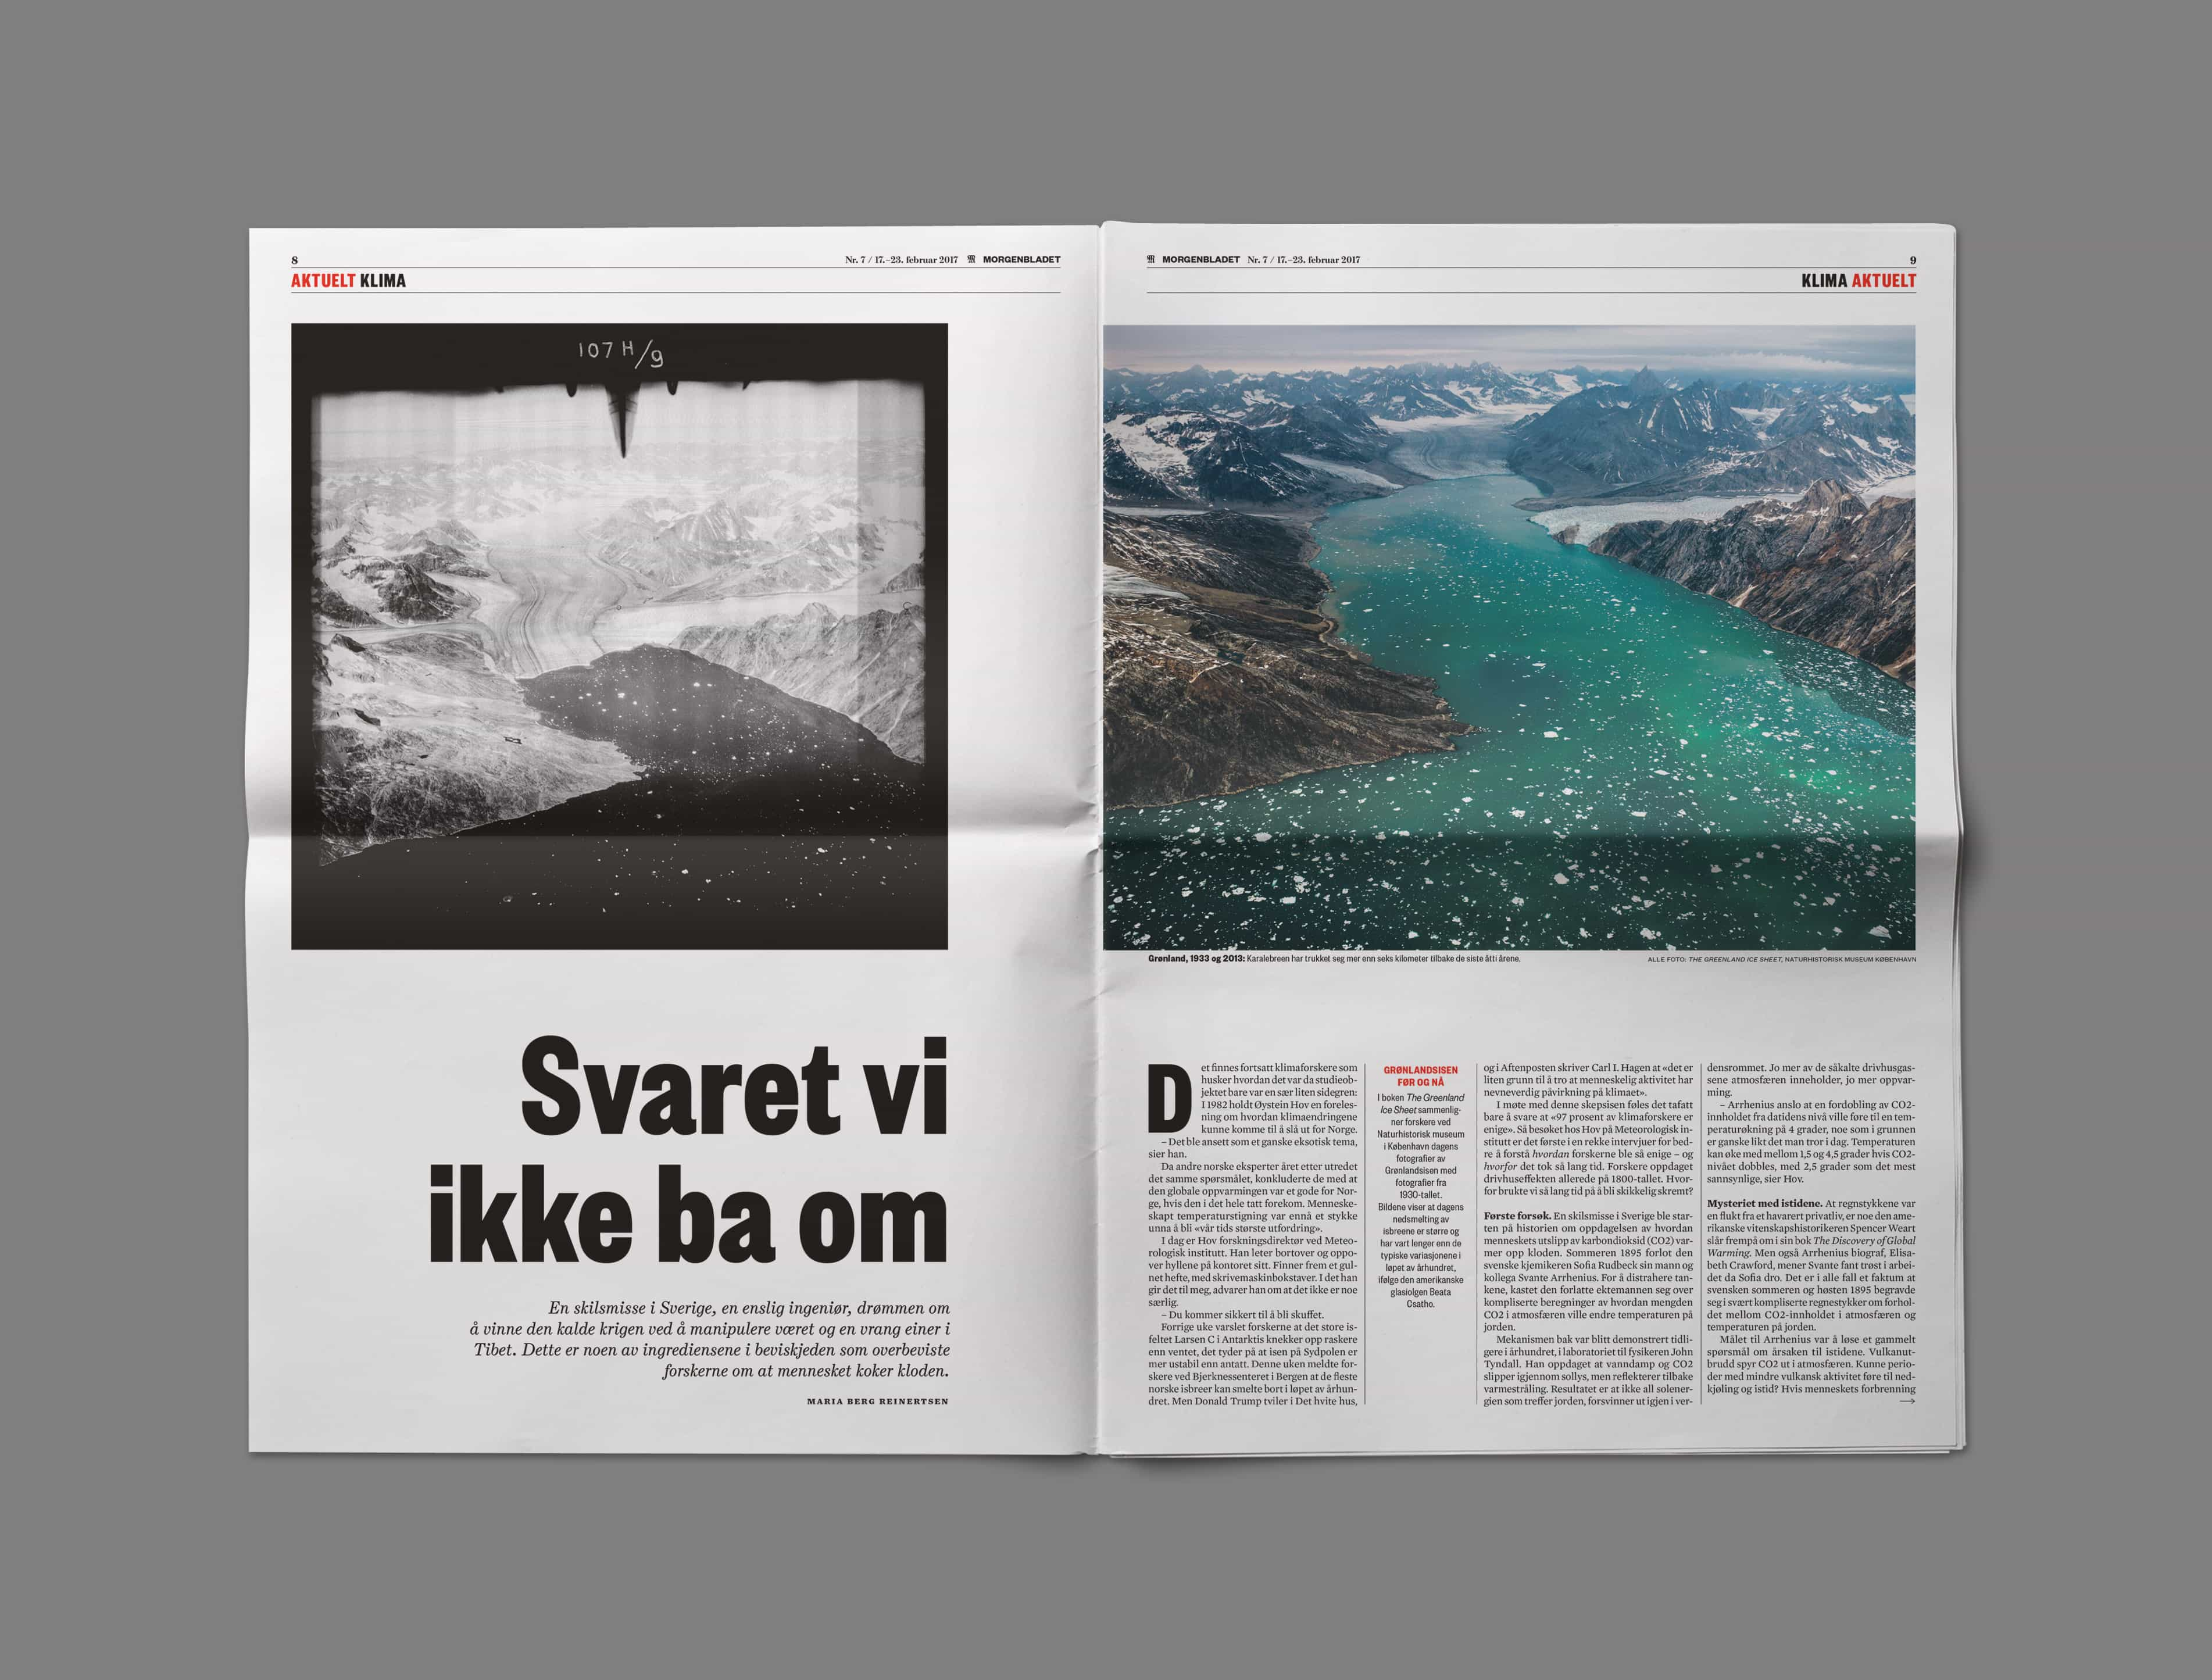 Bureau Johannes Erler – European Newspaper of the Year Award: Morgenbladet